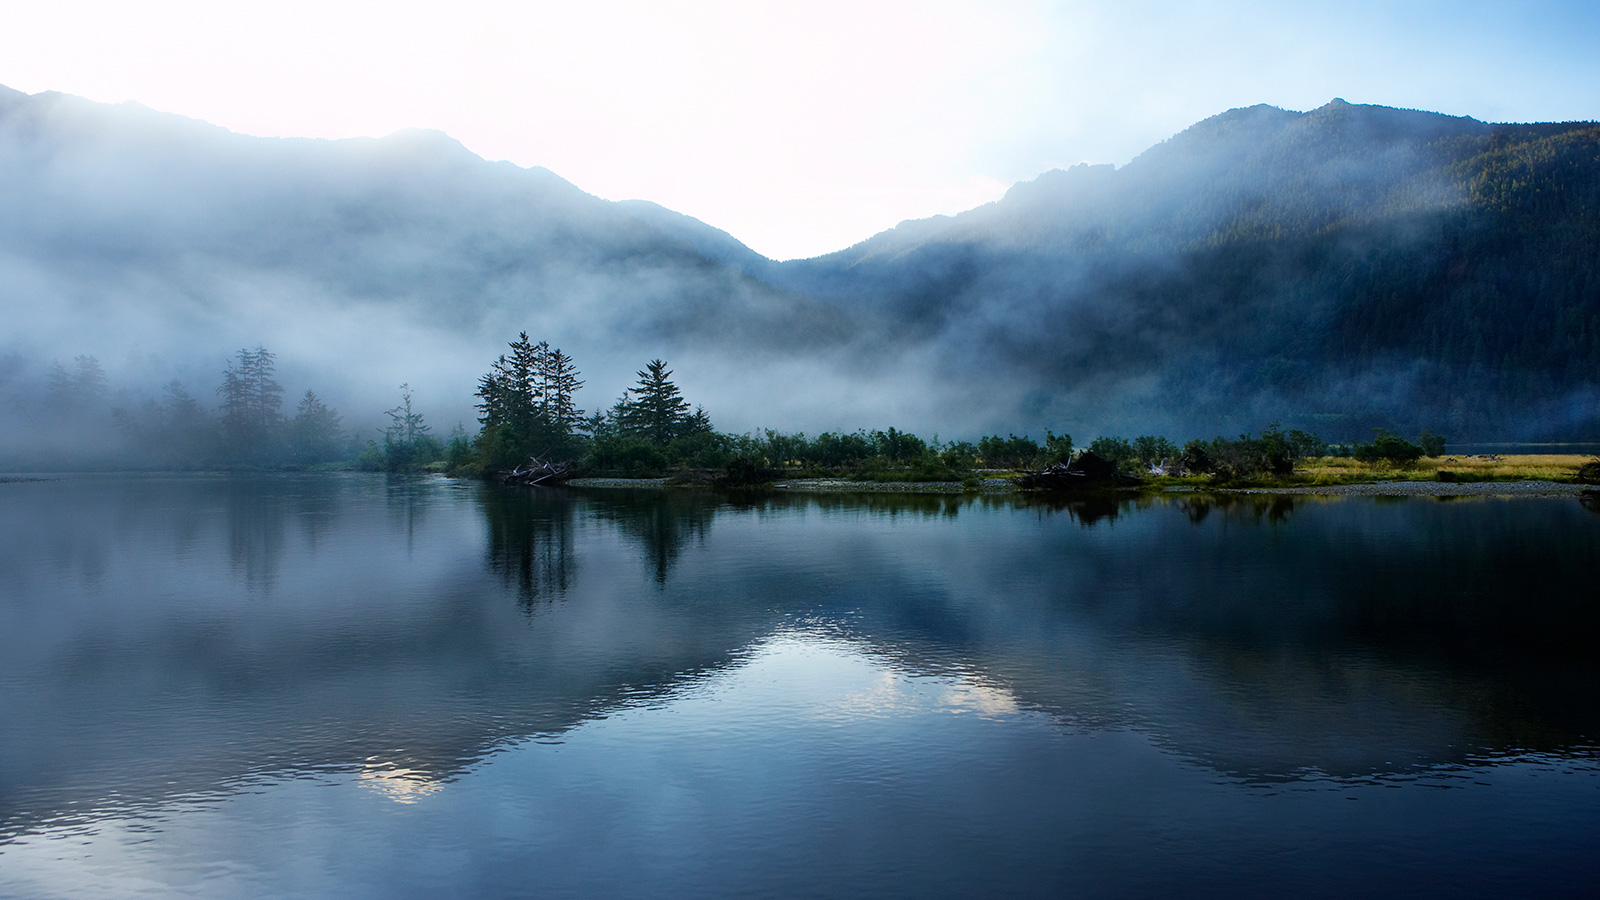 Spooky fog settles over a mountain lake